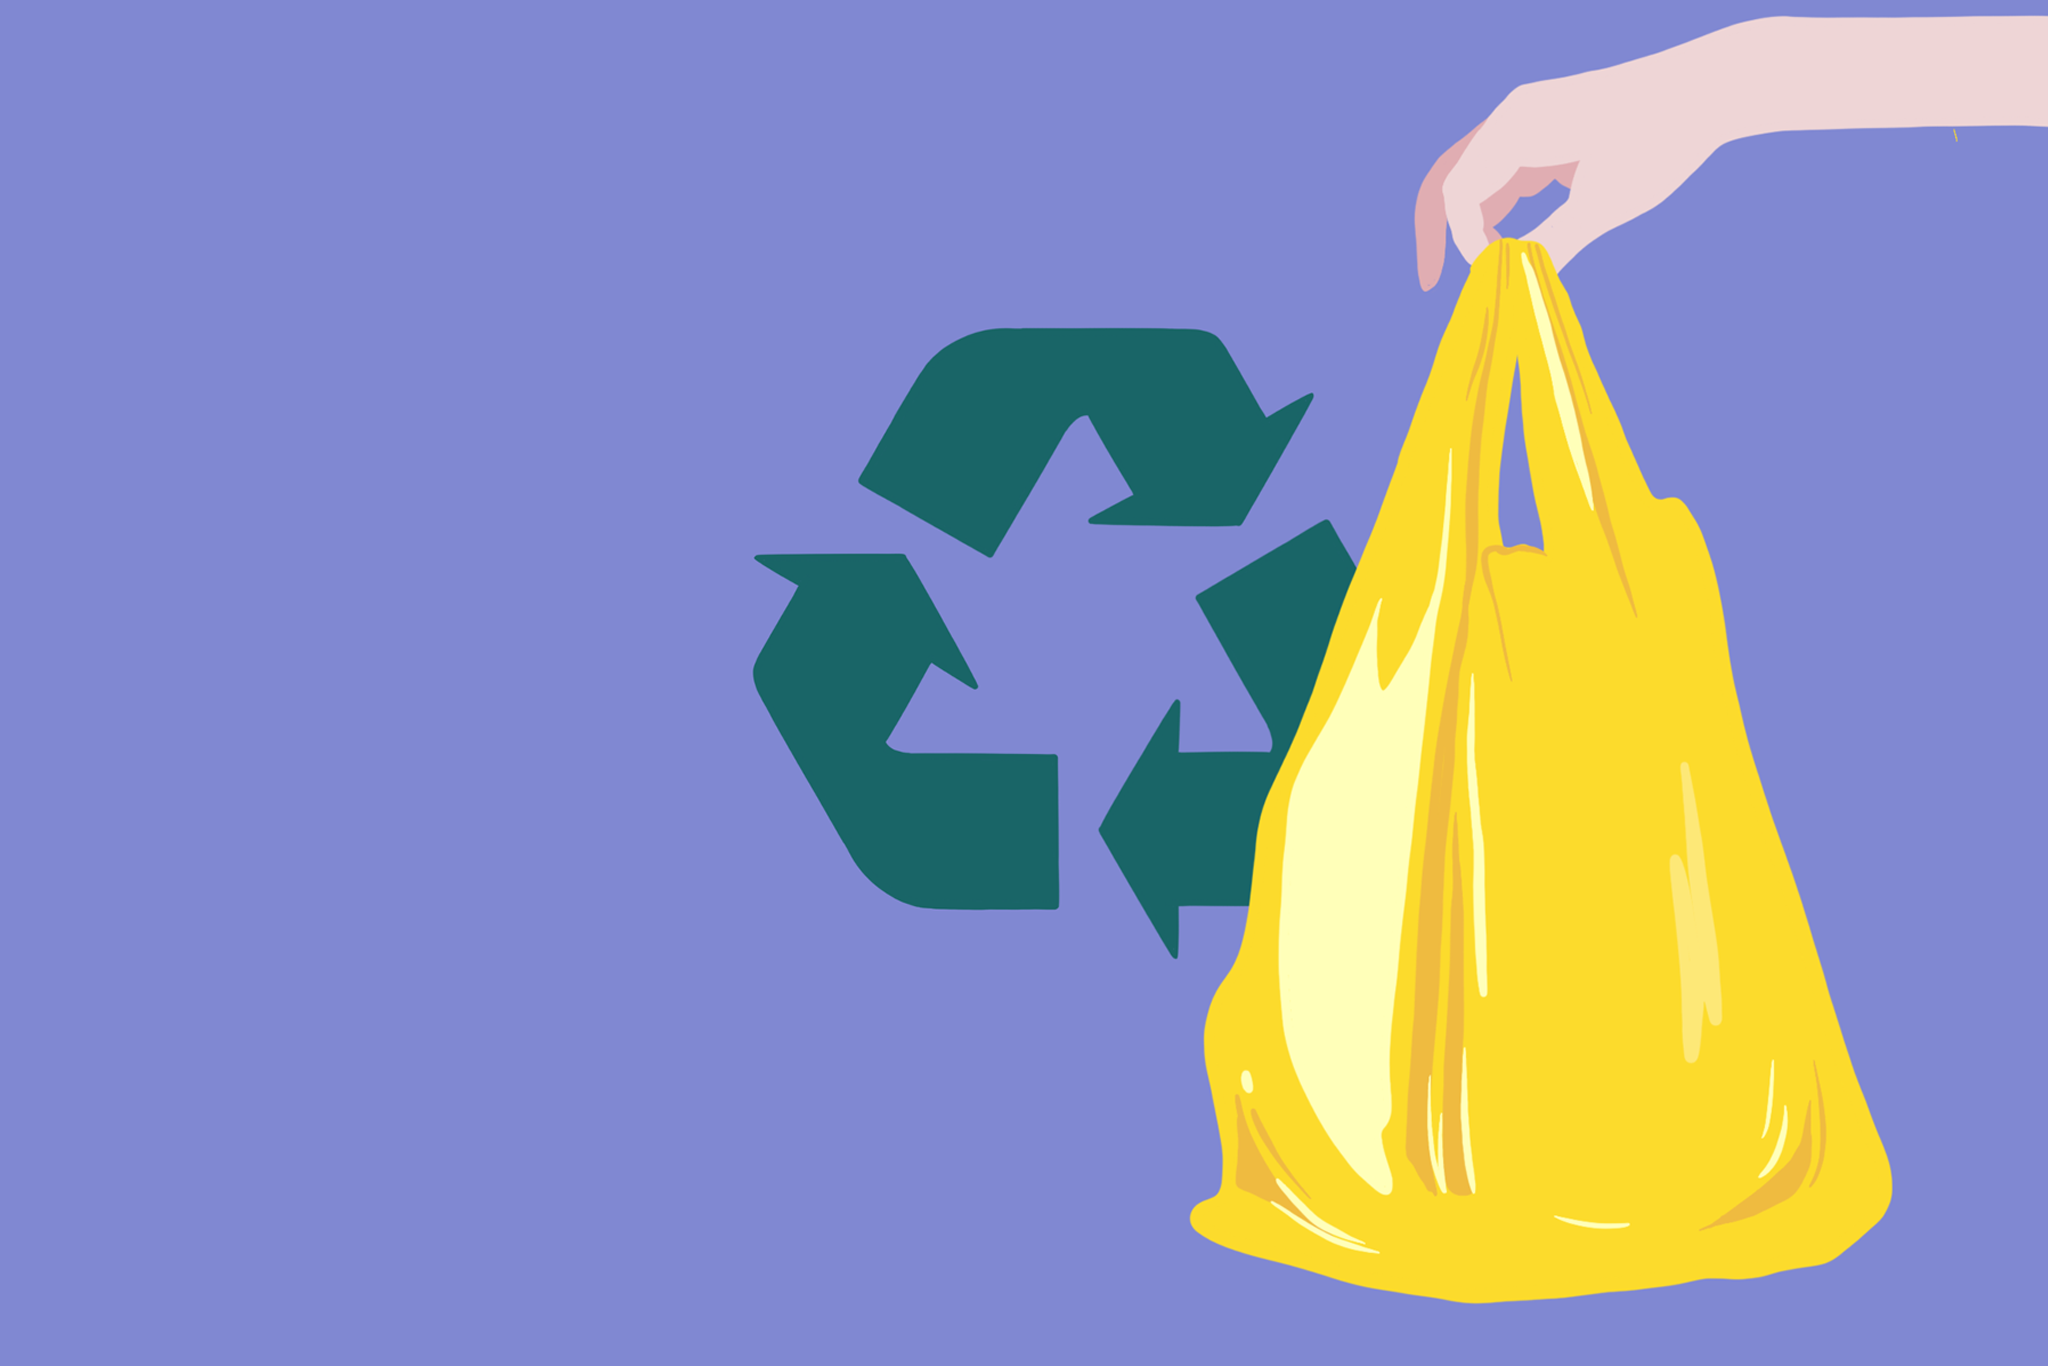 Take steps toward sustainability, ditch plastic bags – The Temple News